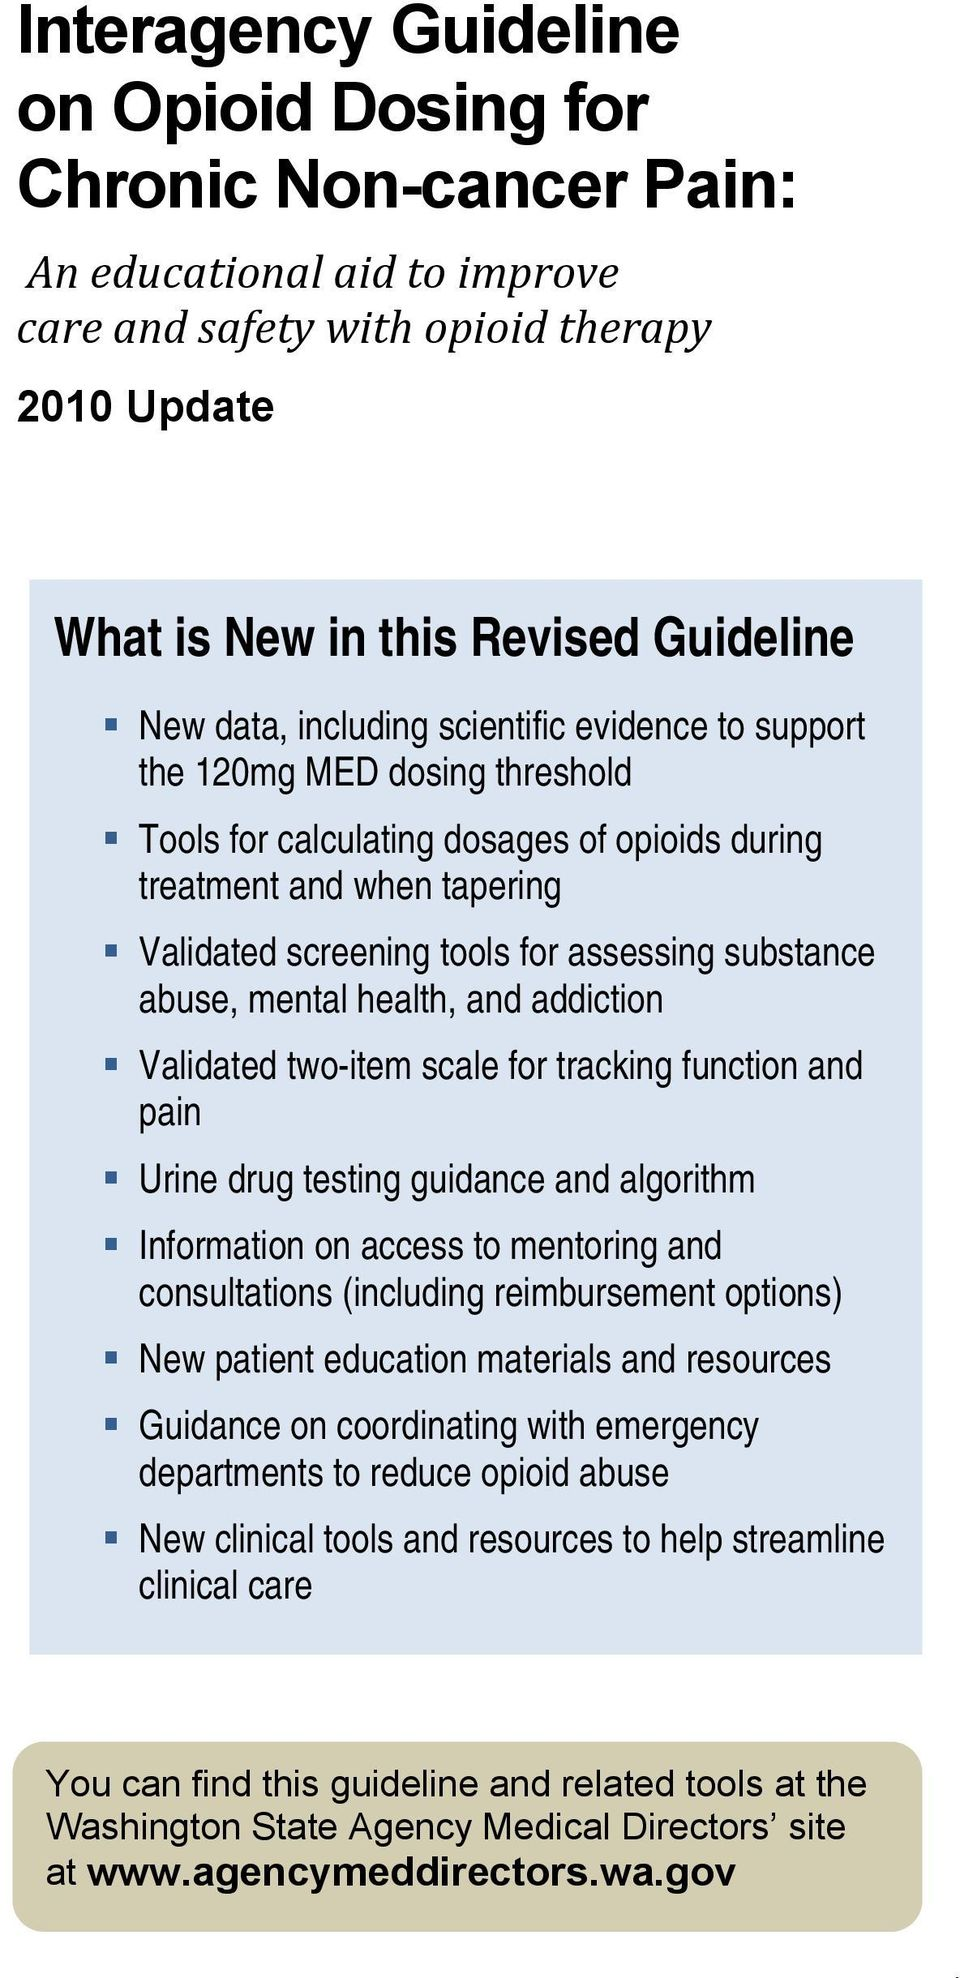 abuse, mental health, and addiction Validated two-item scale for tracking function and pain Urine drug testing guidance and algorithm Information on access to mentoring and consultations (including